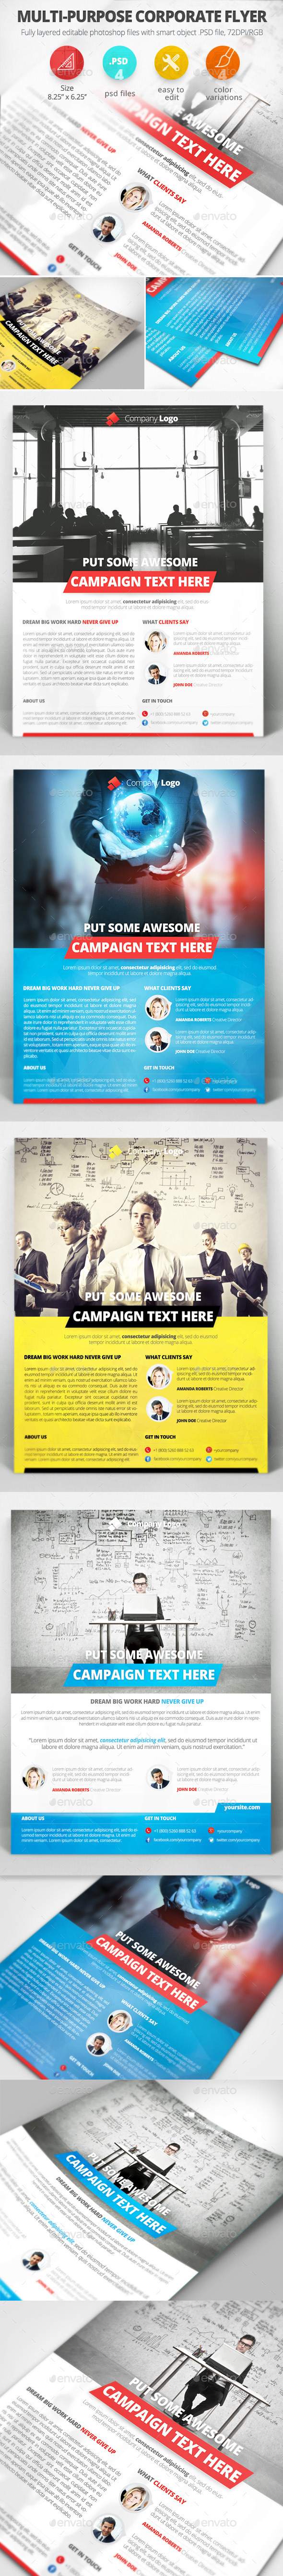 GraphicRiver Multi-purpose Corporate Flyer 9513572